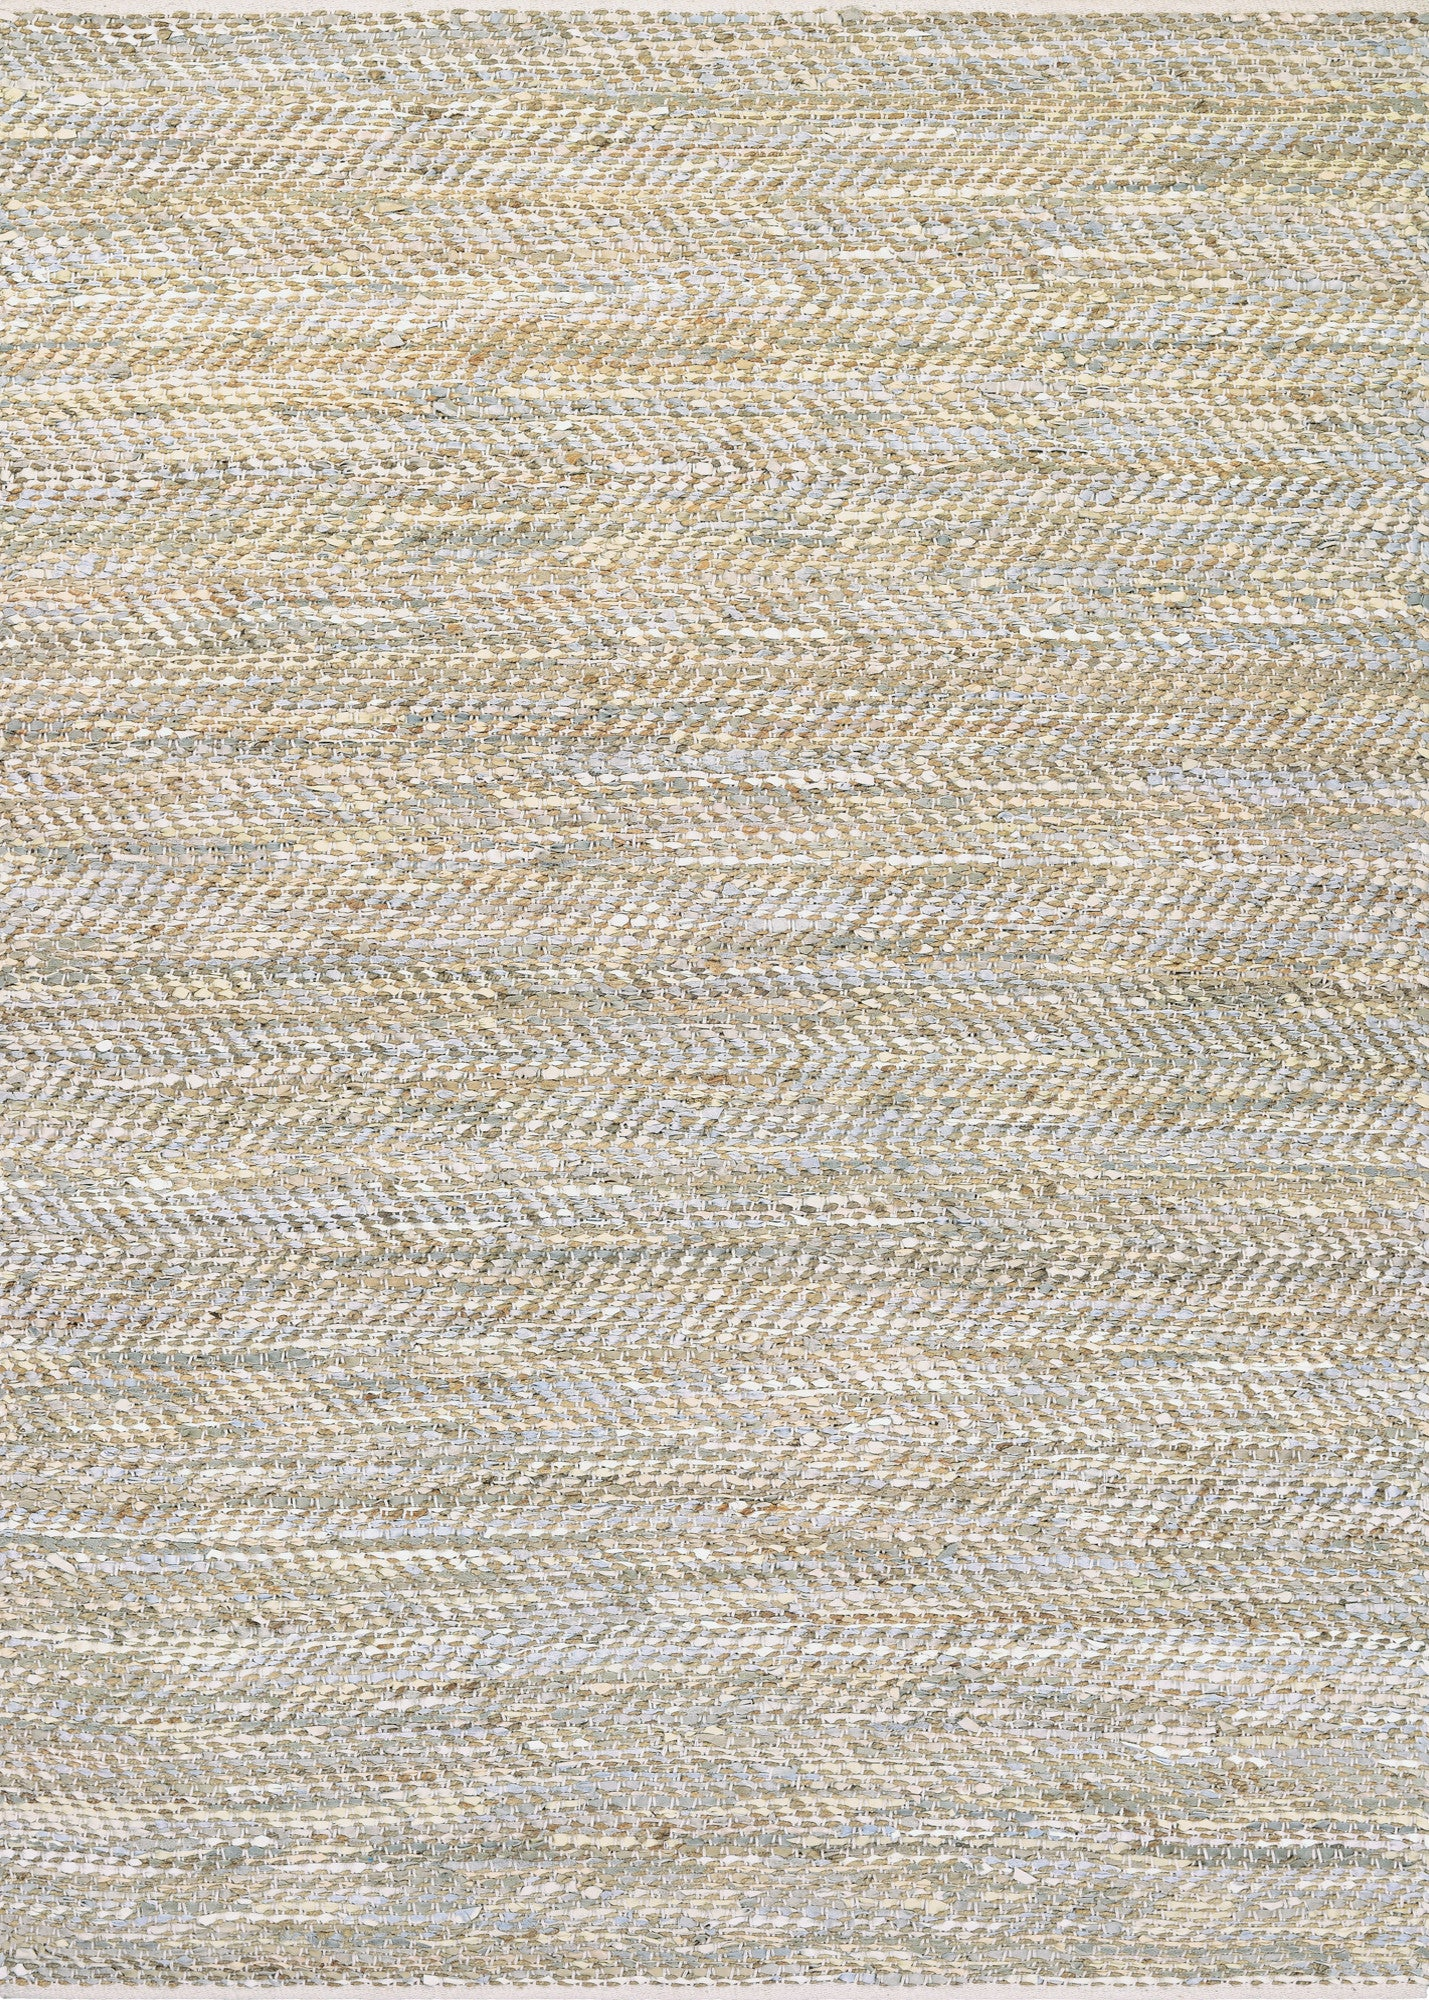 Couristan Nature's Elements Clouds Ivory/Oatmeal/Skyblue Area Rug